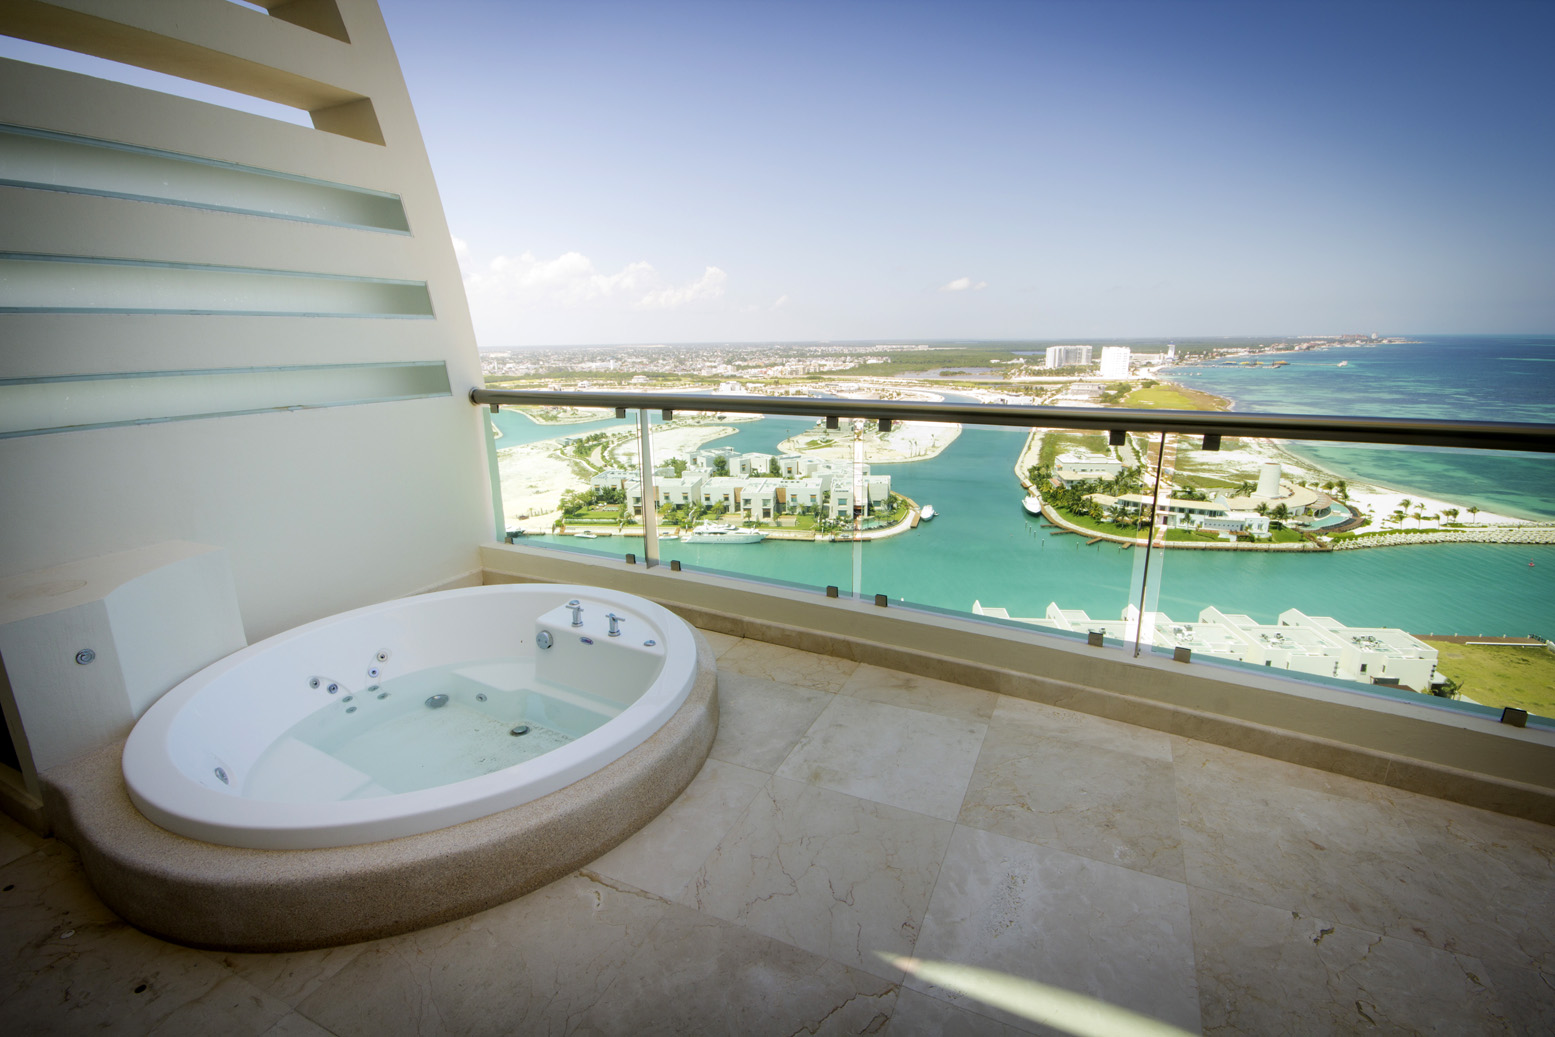 novo-cancun-ph6-puerto-realty_1555